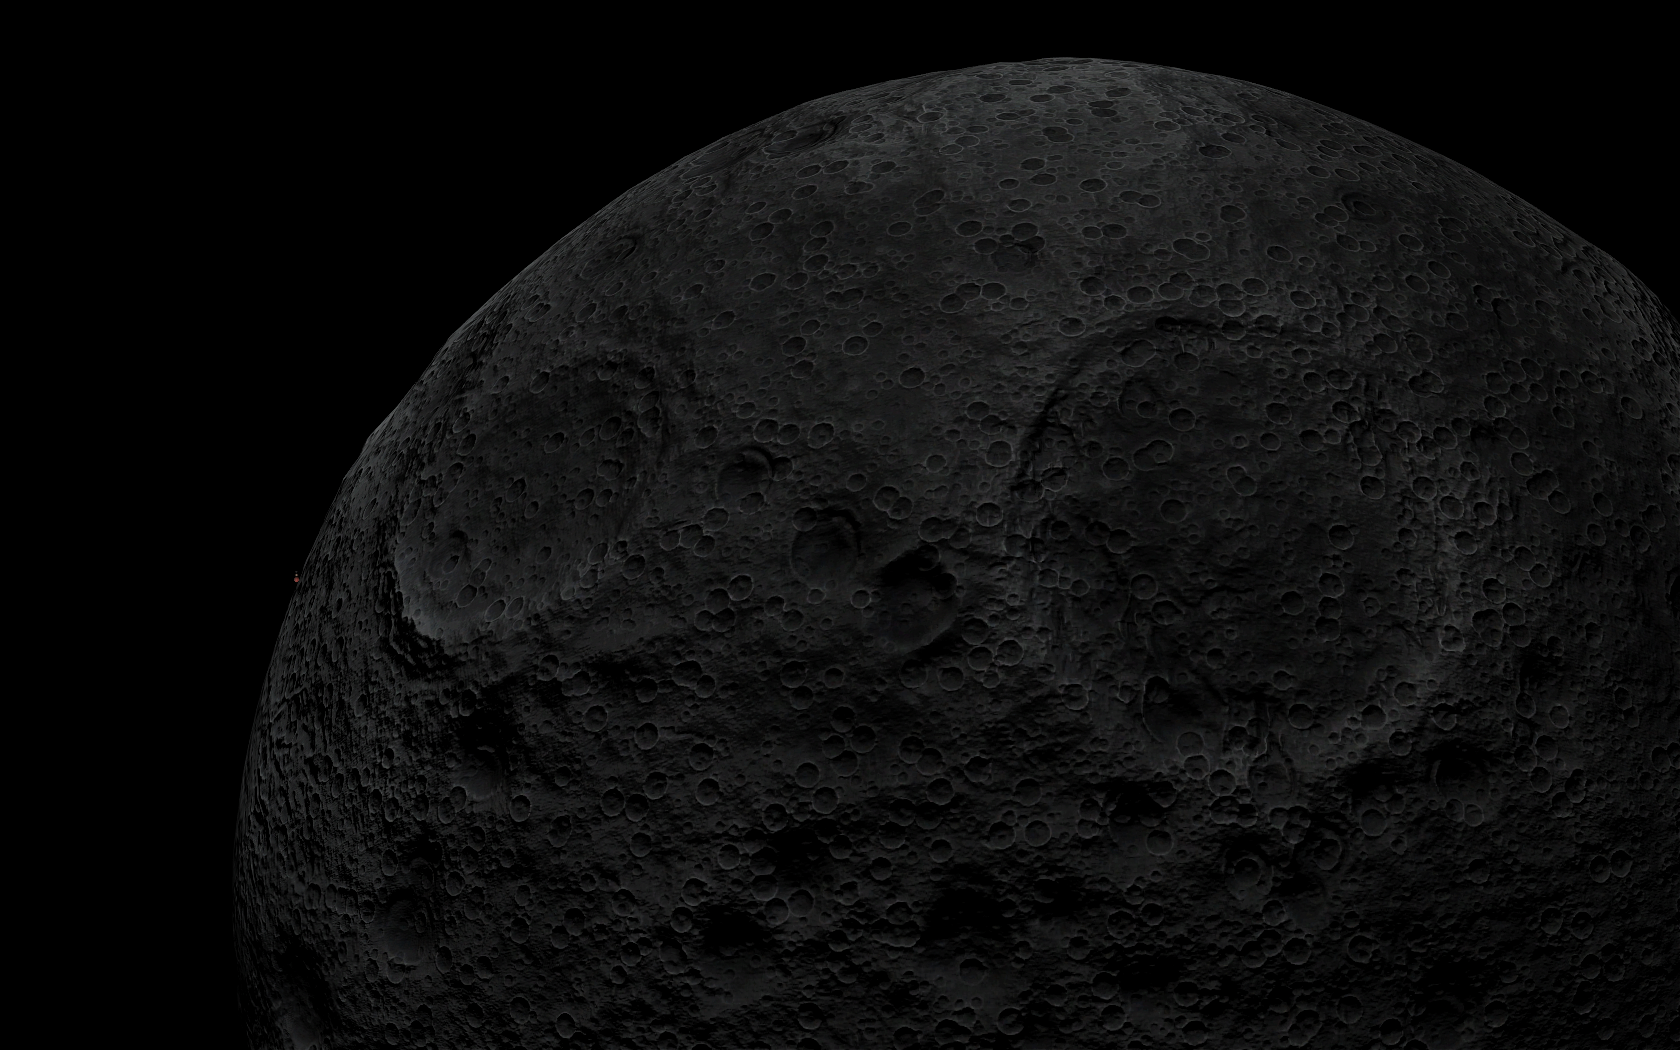 sarnus-occultation-by-mun_36782037926_o.png